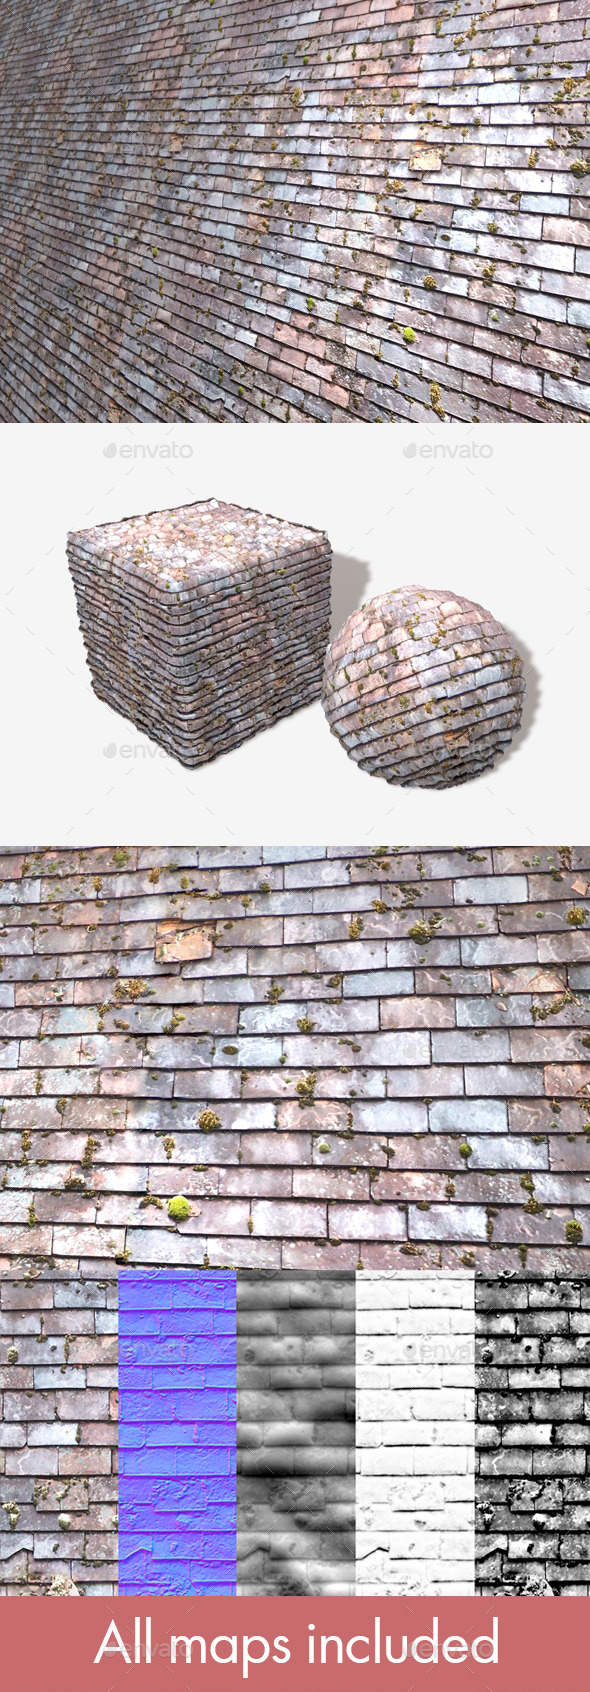 Old Mossy Roof Tiles Seamless Texture - 3DOcean Item for Sale